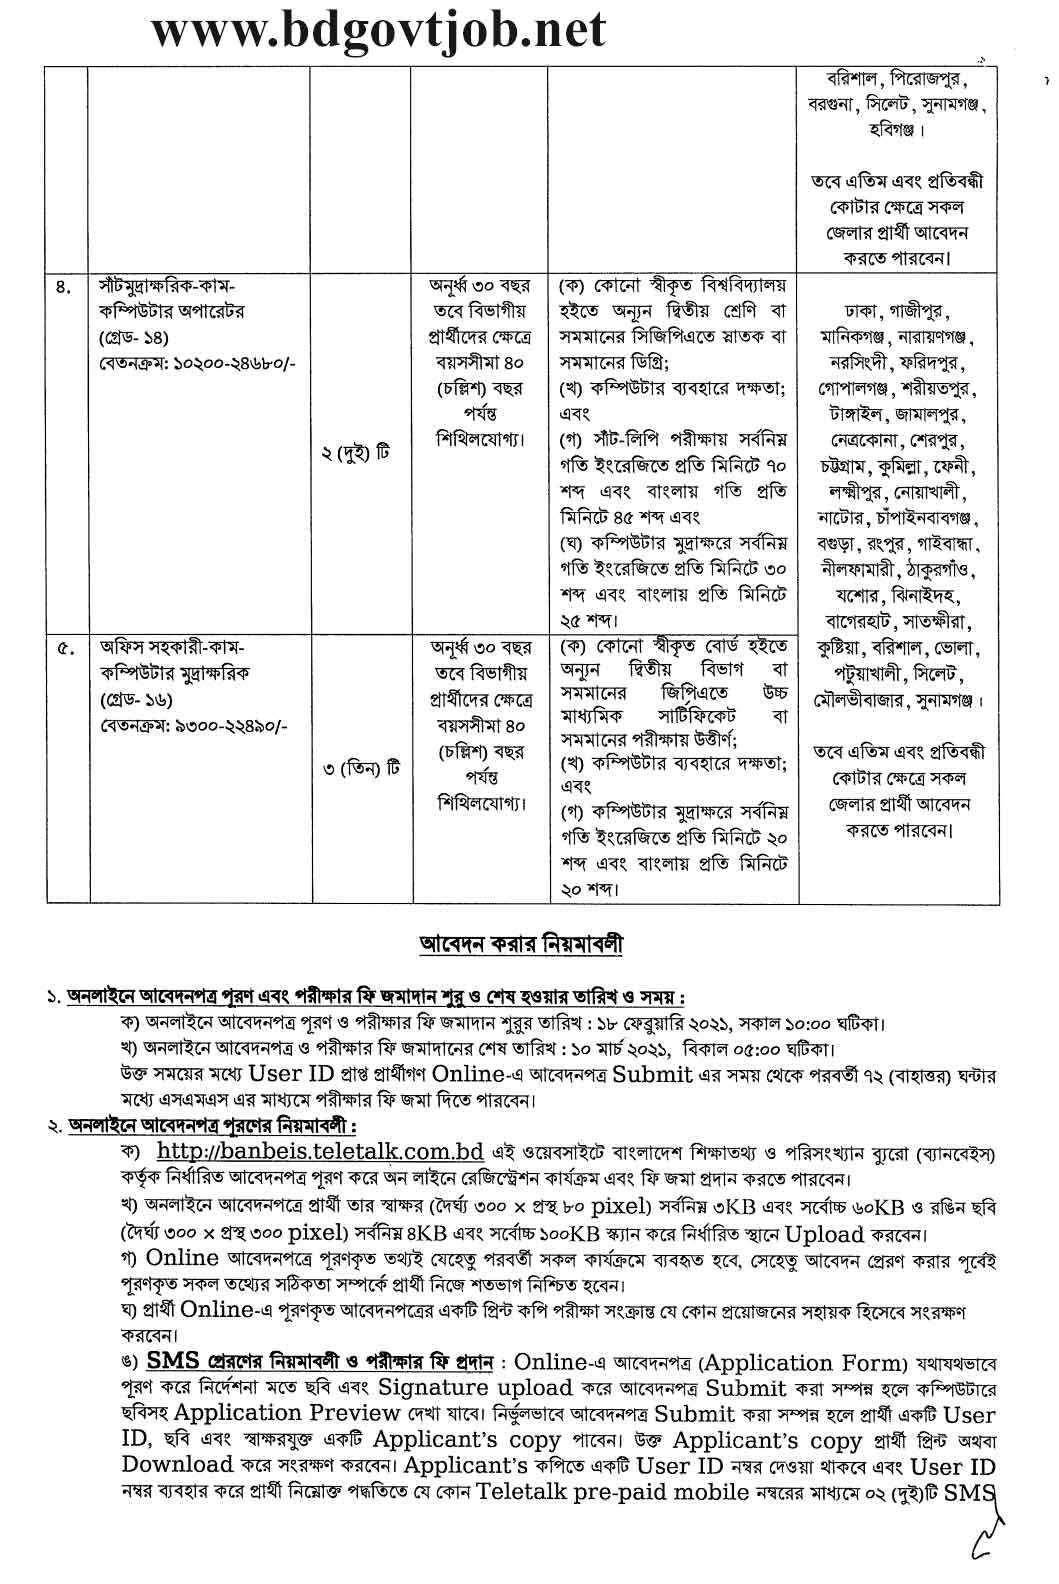 Bangladesh Bureau of Educational Information and Statistics Job Circular 2021